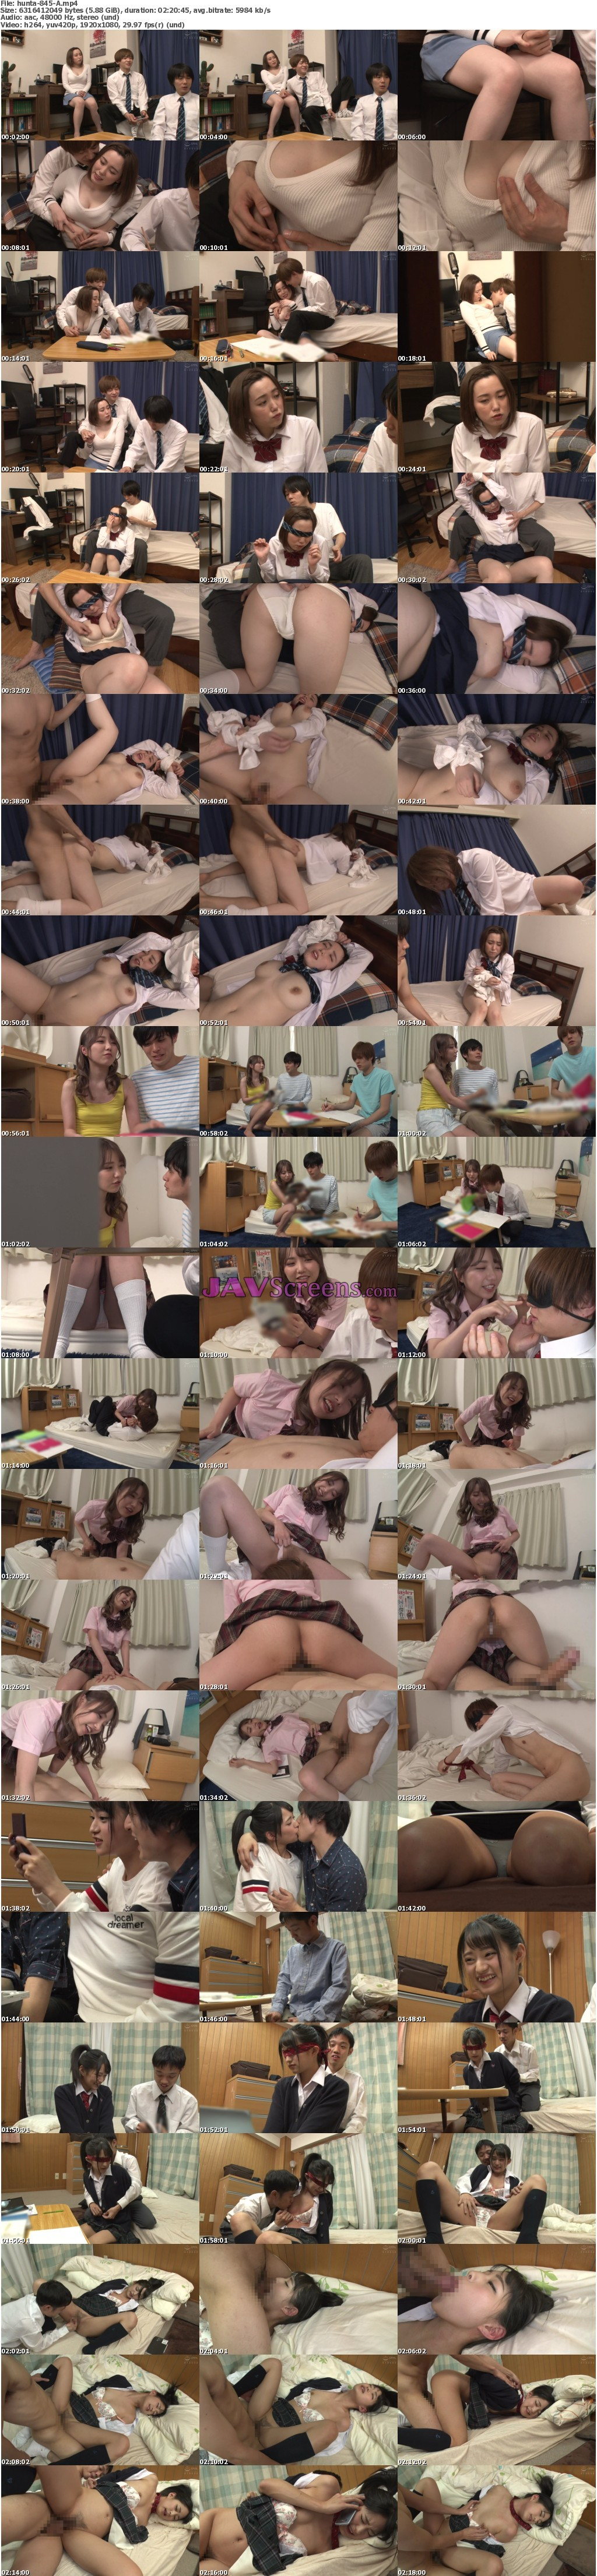 HUNTA-845A.jpg - JAV Screenshot